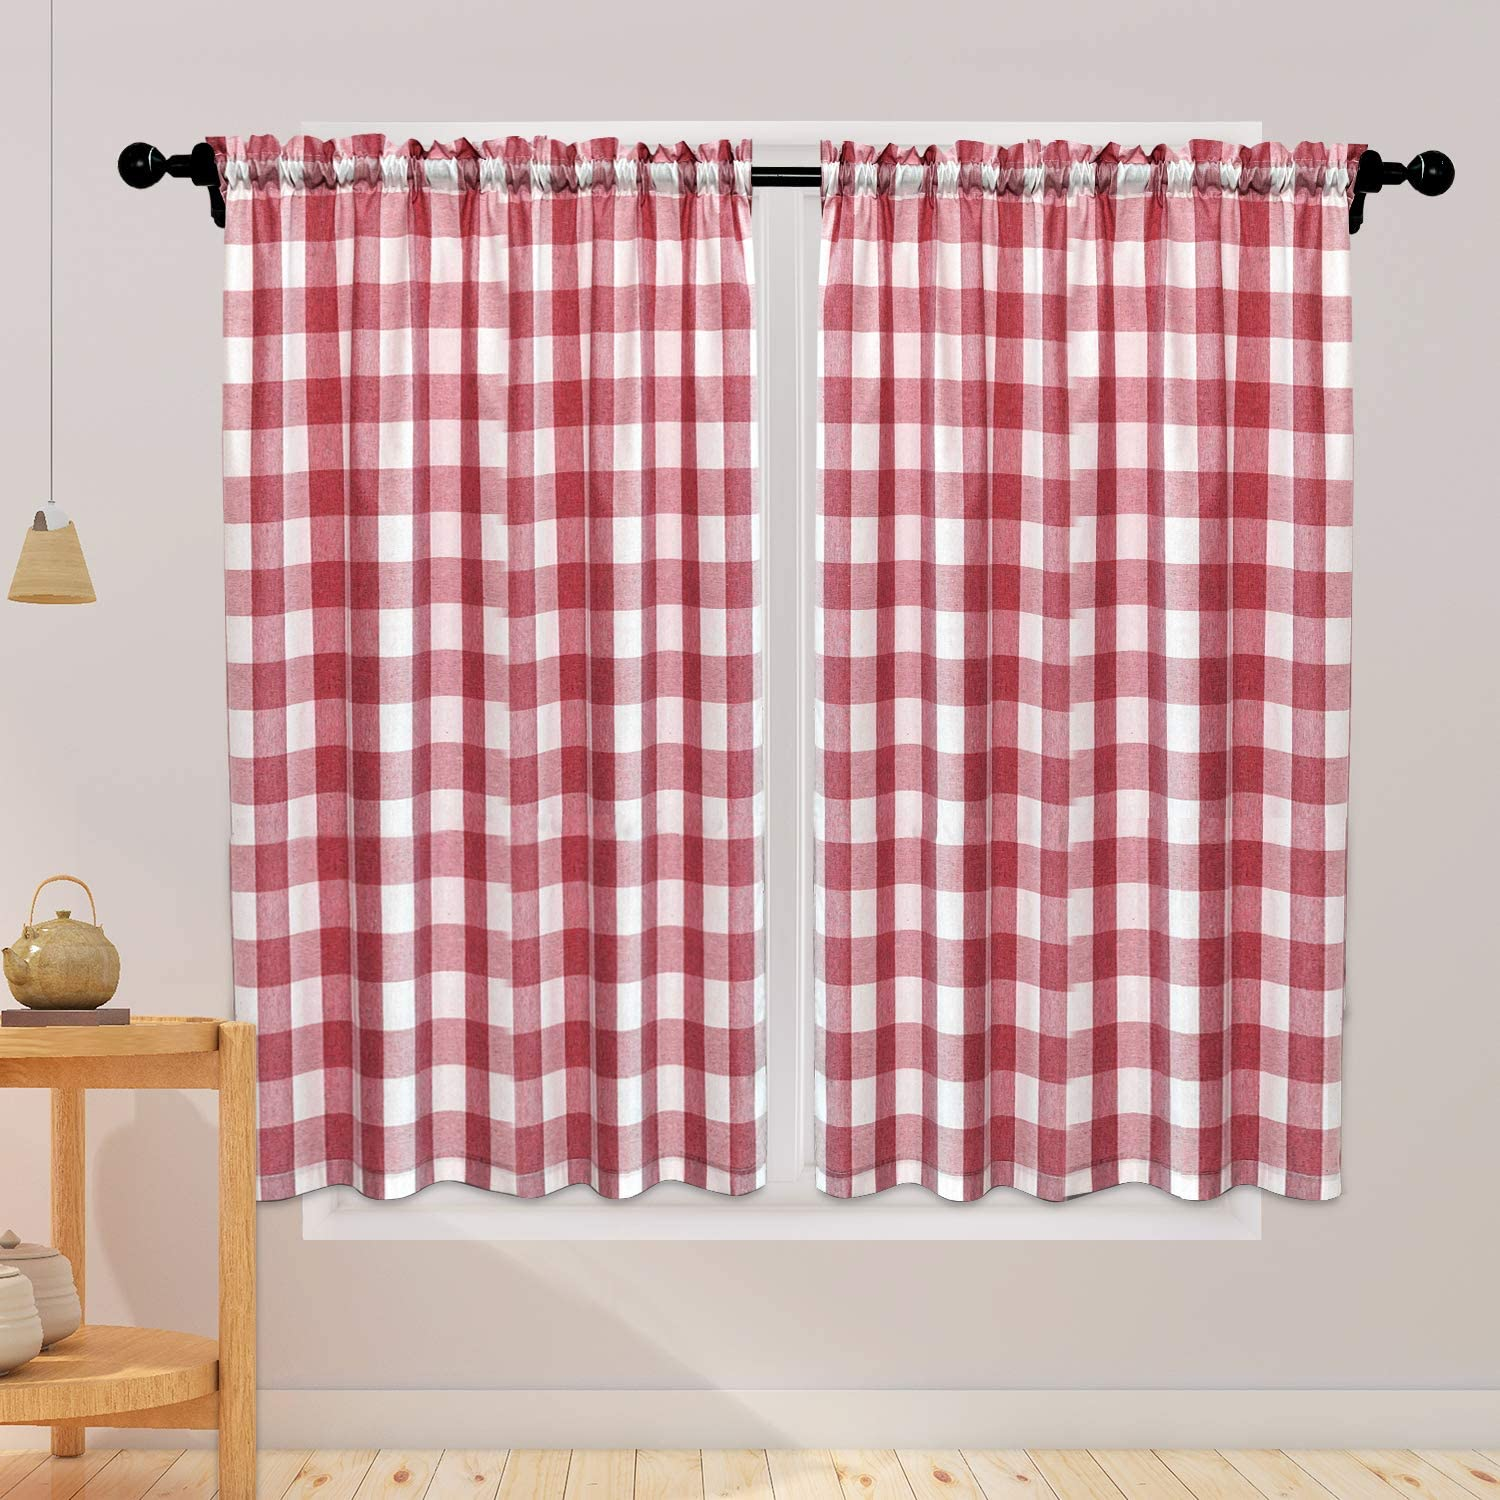 NATUS WEAVER Buffalo Check Curtains 45 inches Long Cotton Basement Red and White Gingham Plaid Kitchen Window Curtain Panels Living Room Checker Drapes Bedroom Rod Pocket Window Treatment 2 Panels